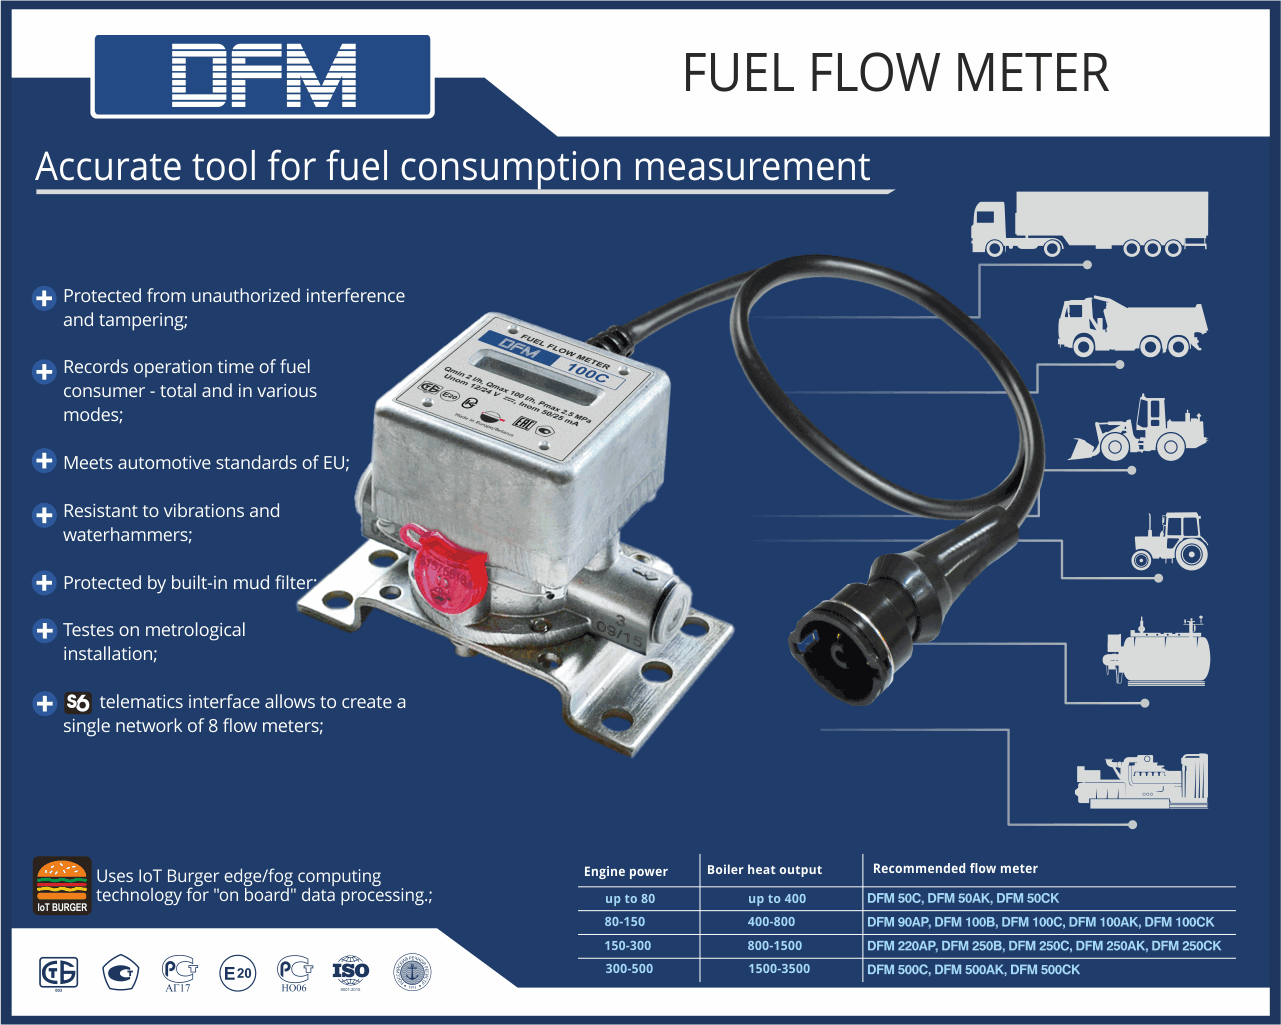 Advatanges of DFM flow meter